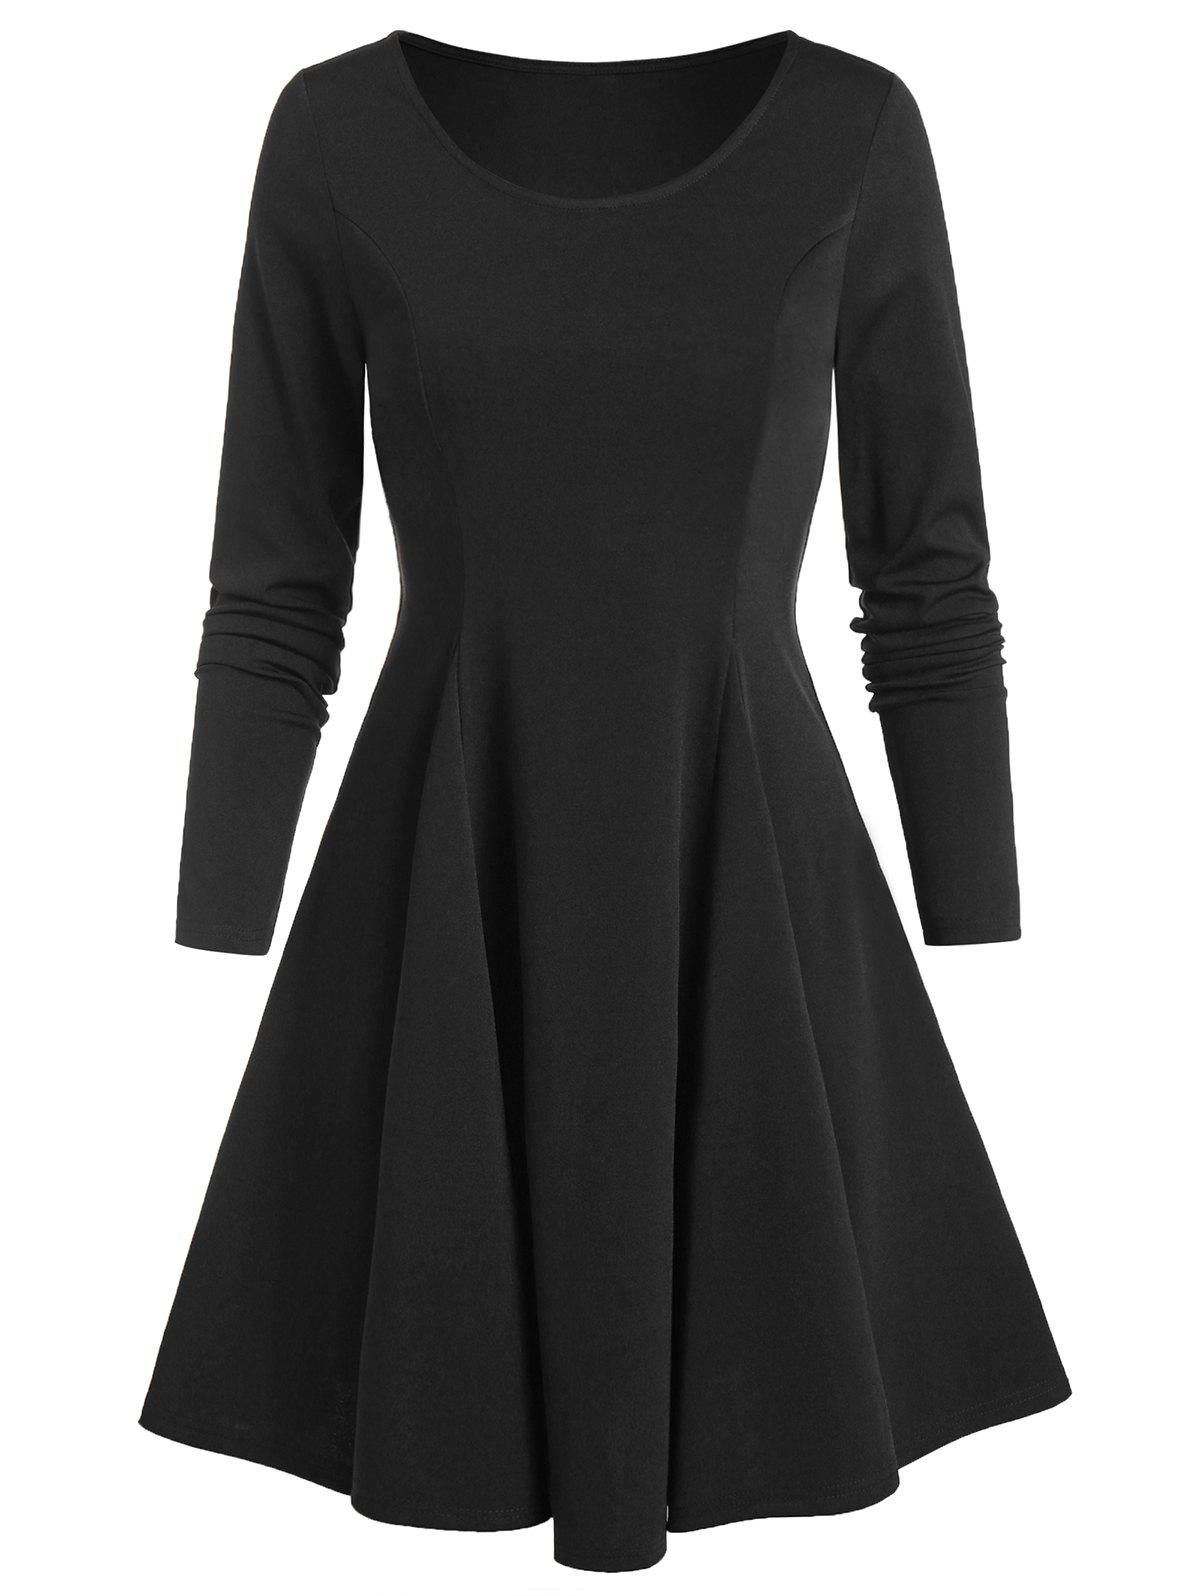 Fancy Long Sleeve Fit and Flare Plain Dress